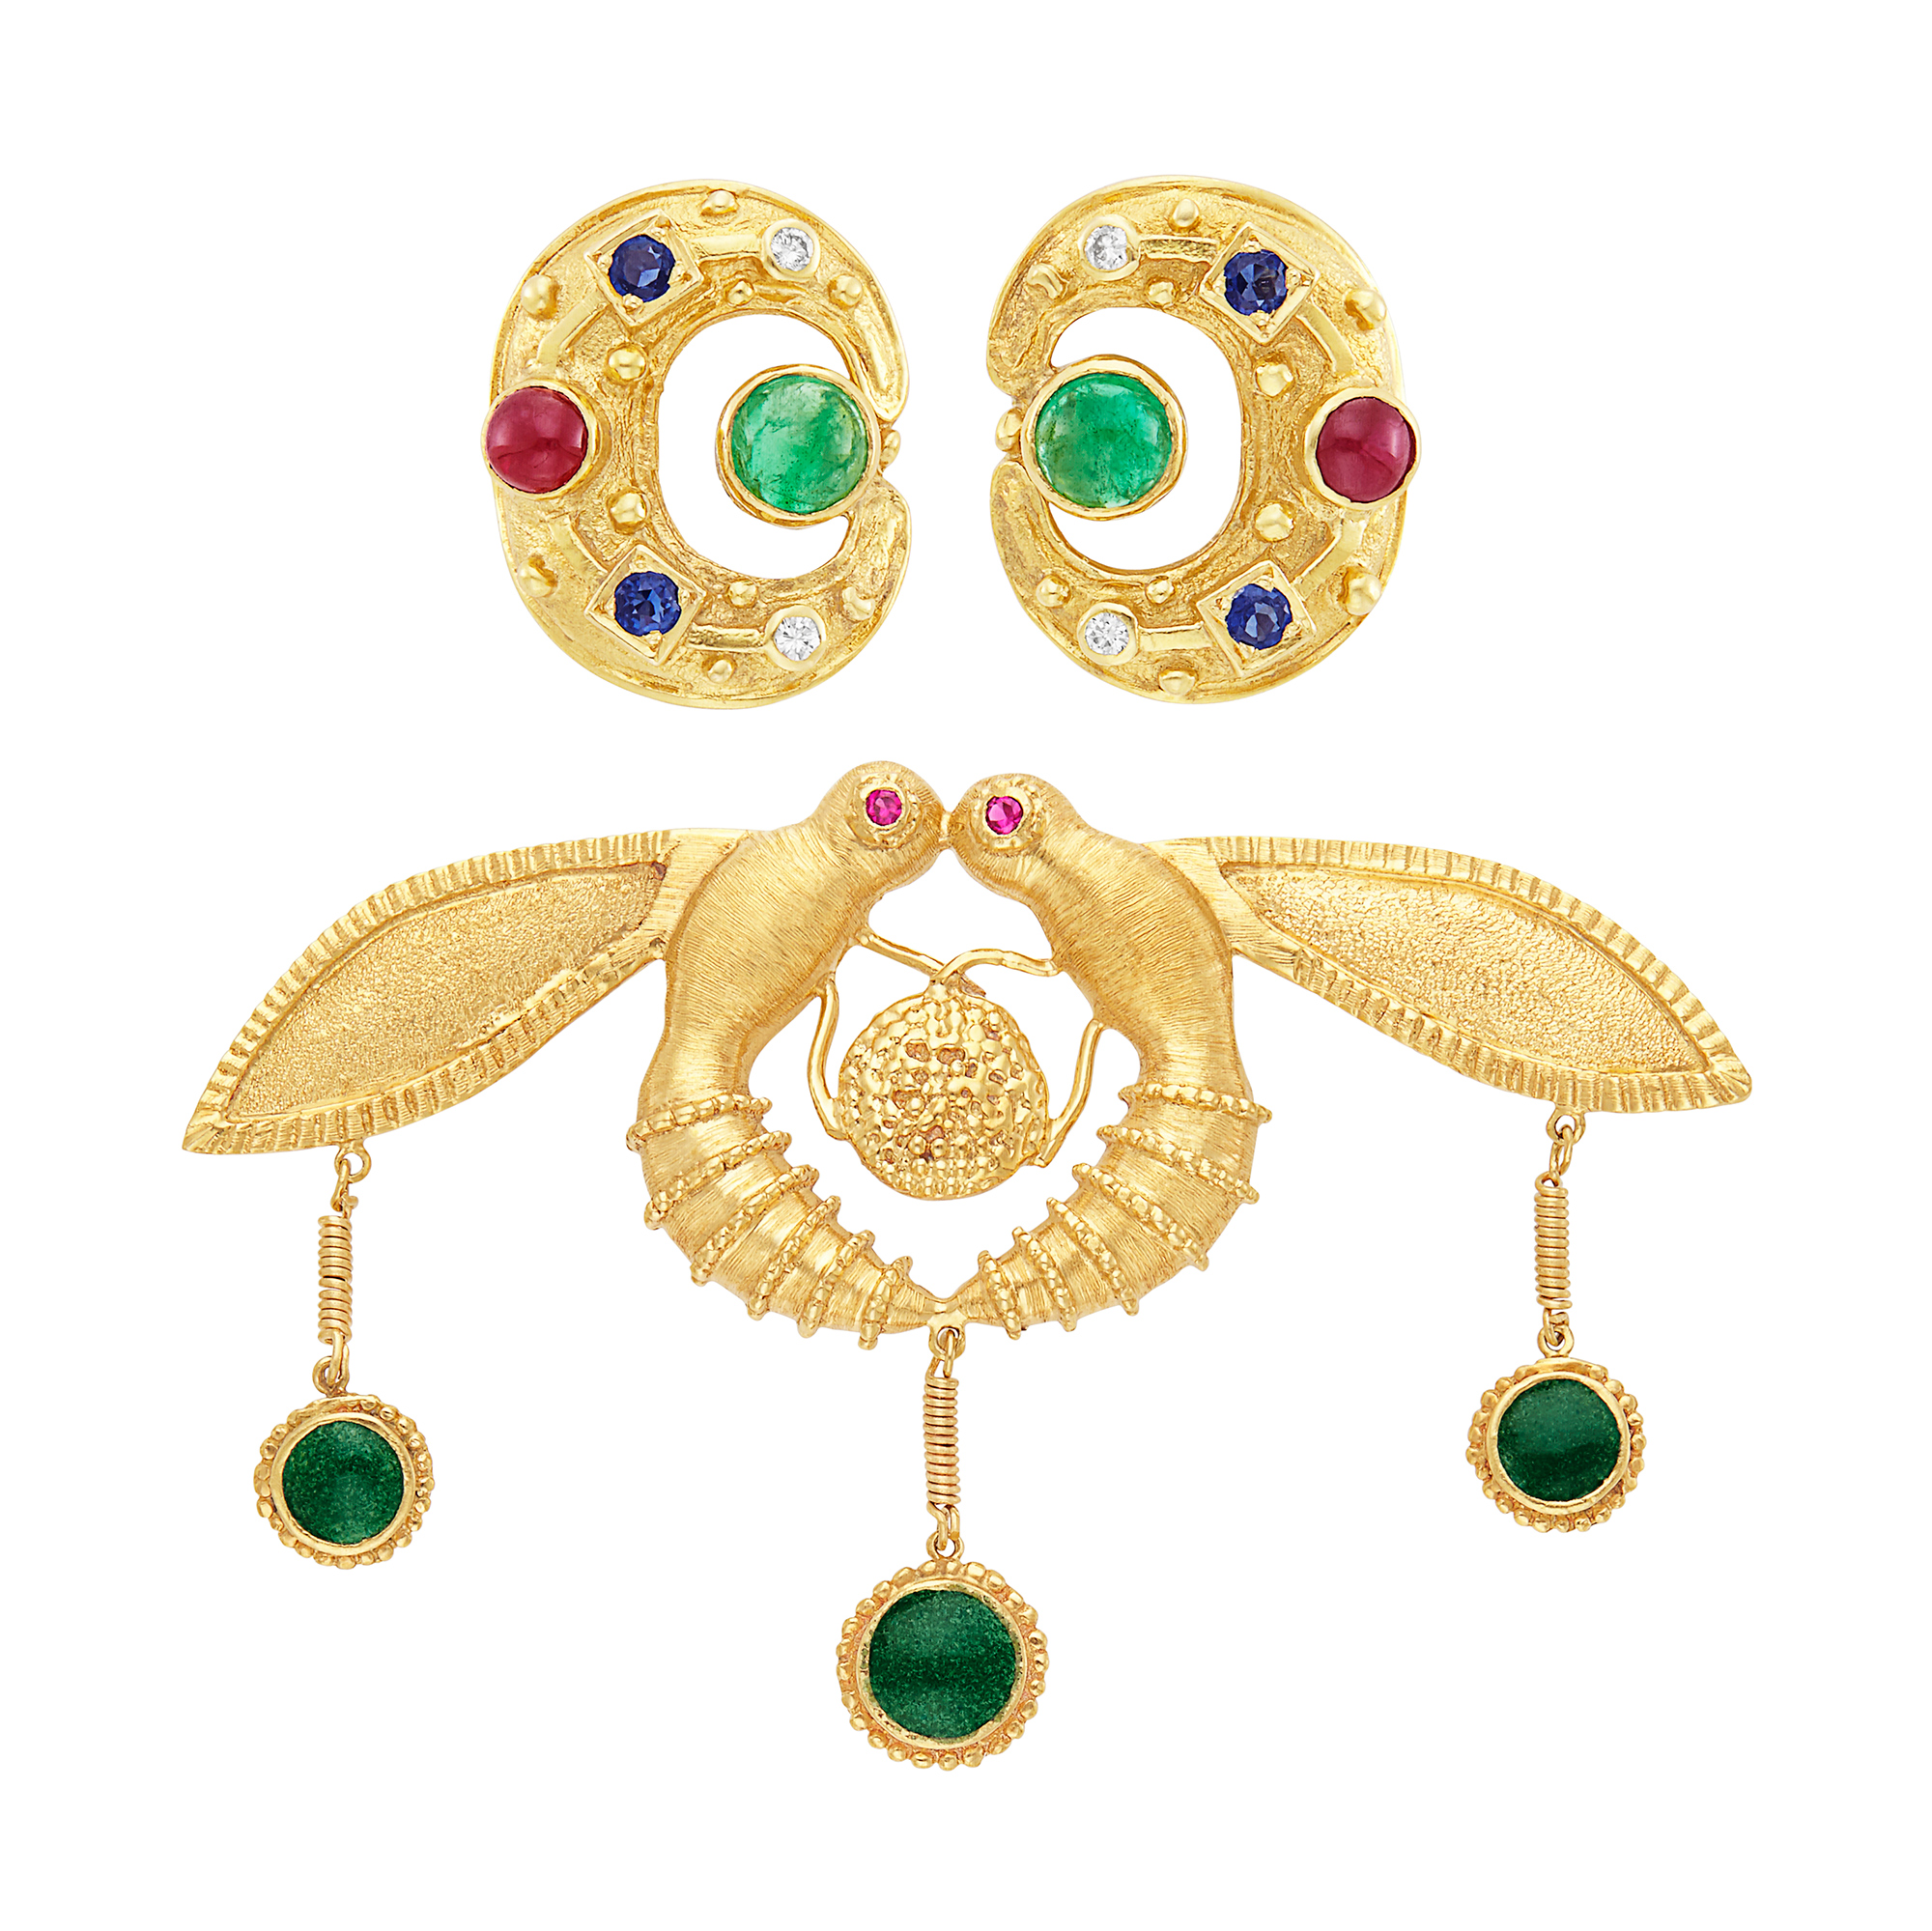 Lot image - Pair of Gold, Gem-Set and Diamond Earclips and Love Bird Brooch, Ilias Lalaounis